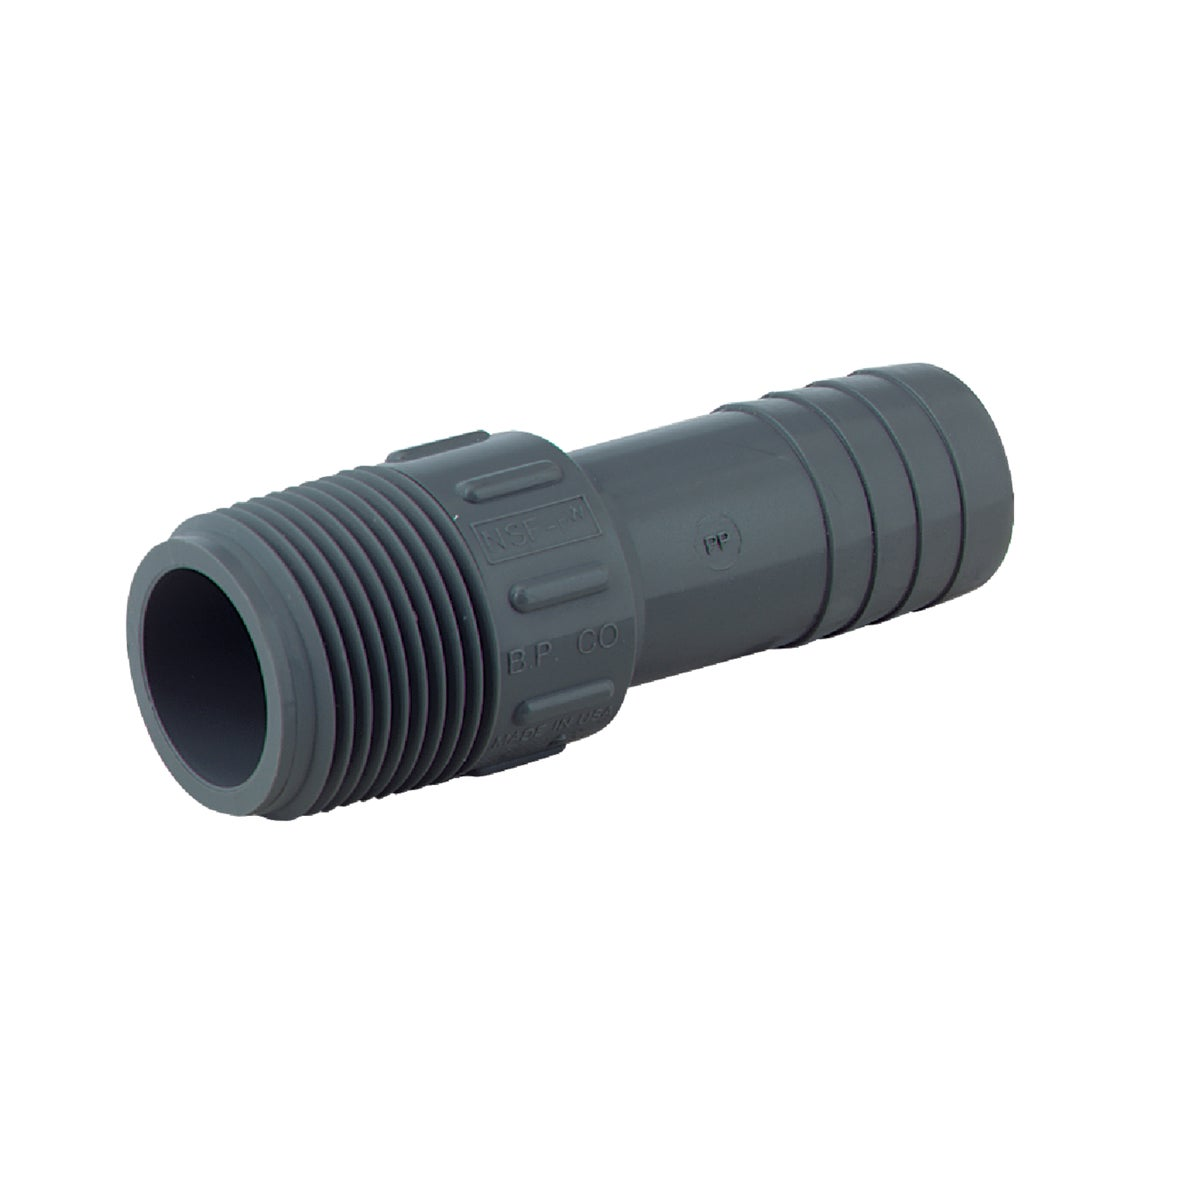 "3/4""POLY MIPXINS ADAPTER - 350407 by Genova Inc"